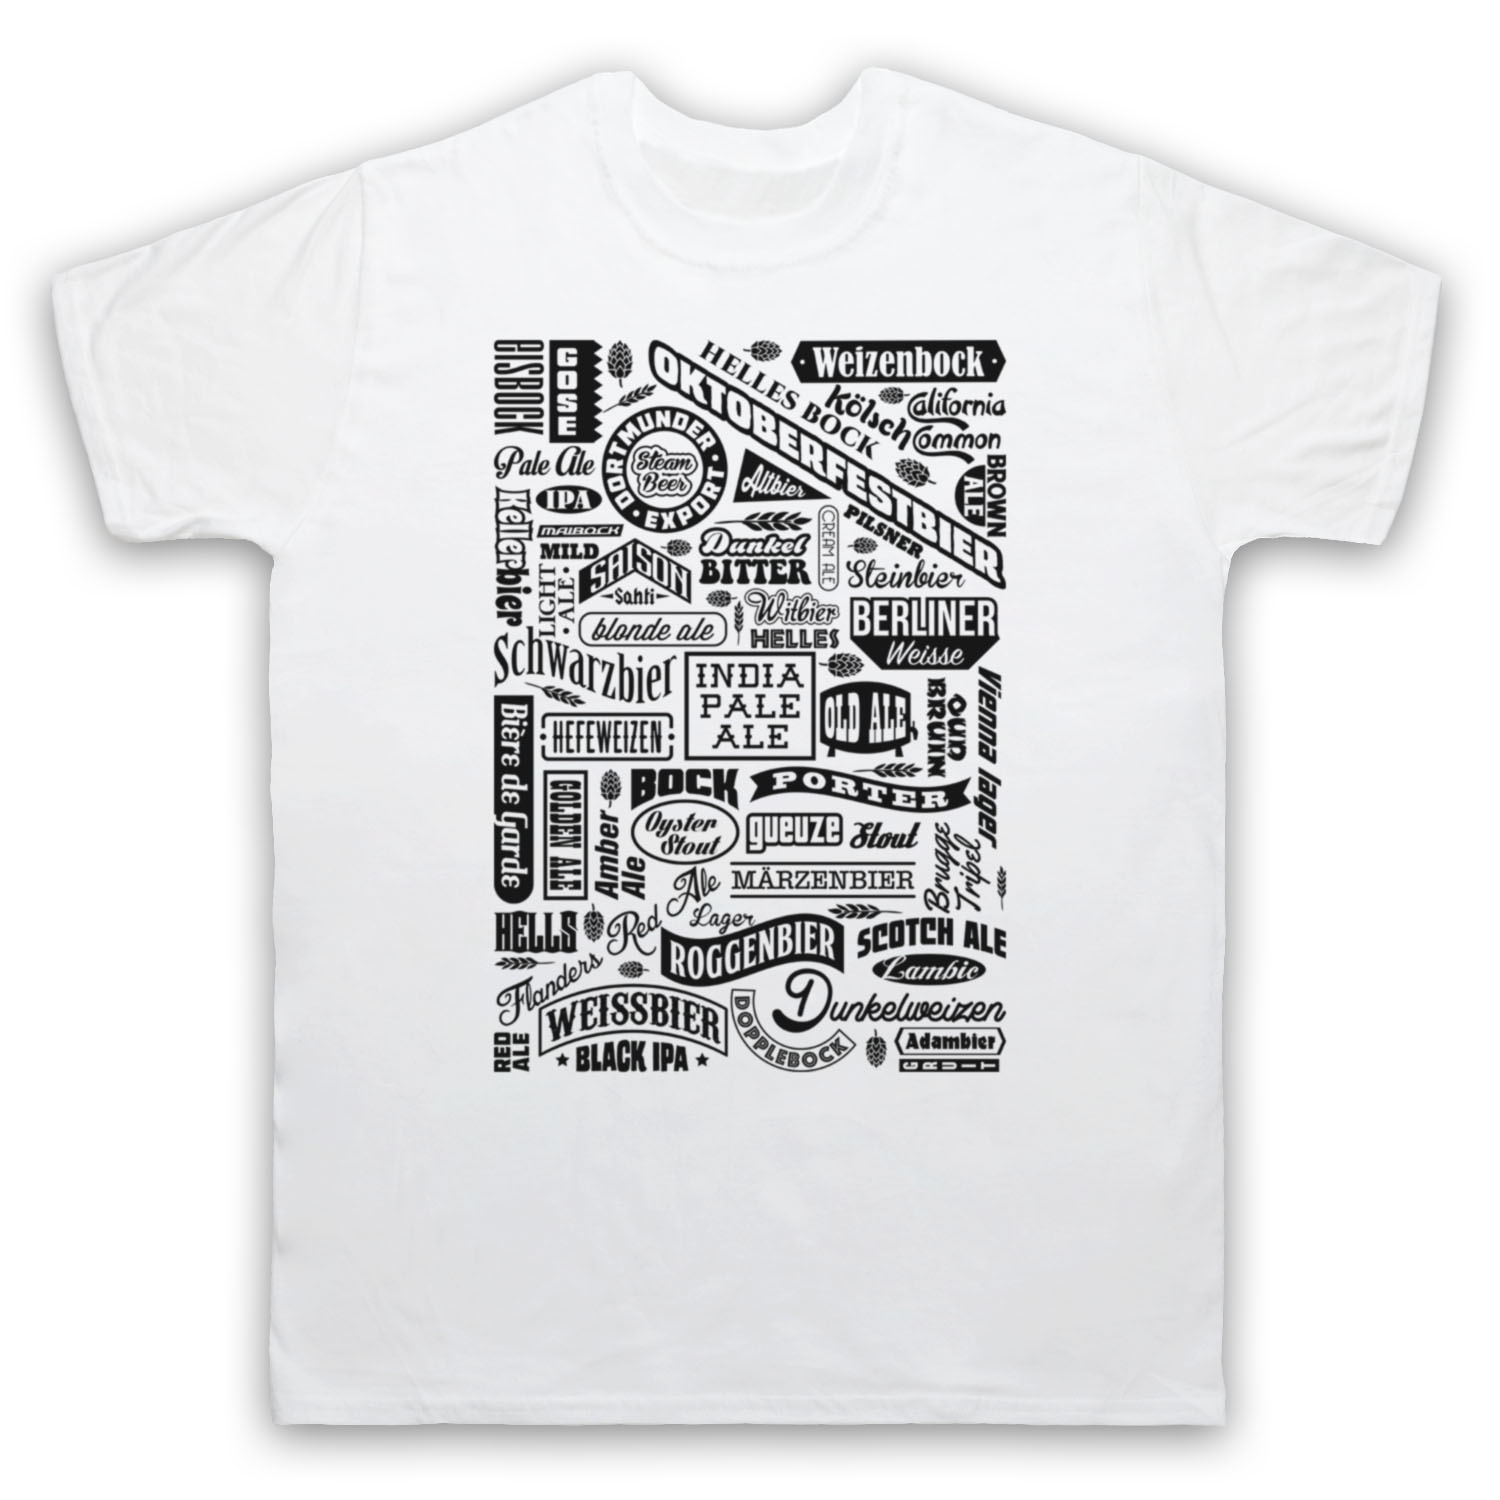 CRAFT BEER TYPES DRINK LOVER TYPOGRAPHY REAL ALE CAMRA MENS WOMENS KIDS T-SHIRT Short Sleeves Cotton T-Shirt Light